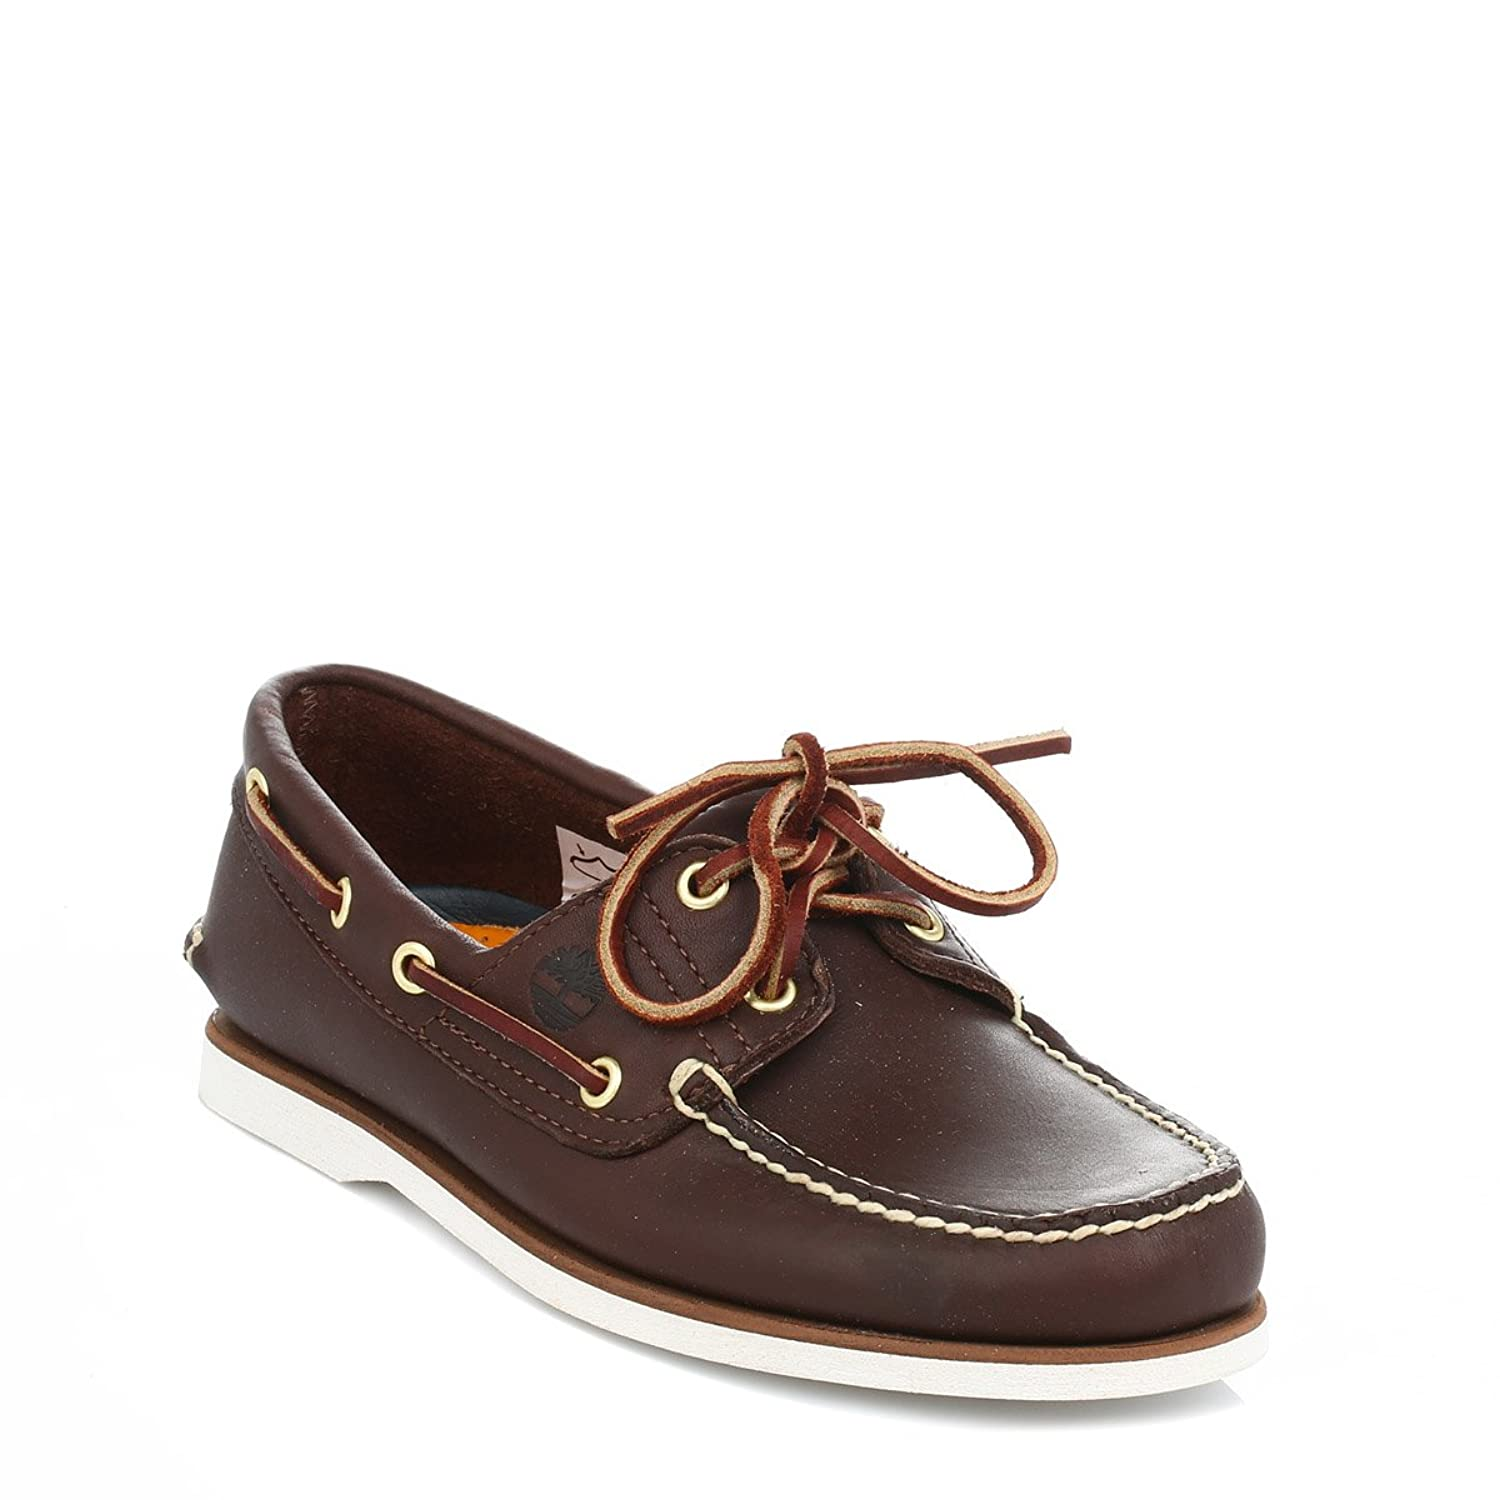 MENS TIMBERLAND CLASSIC BROWN LEATHER 2 EYE BOAT SHOES UK